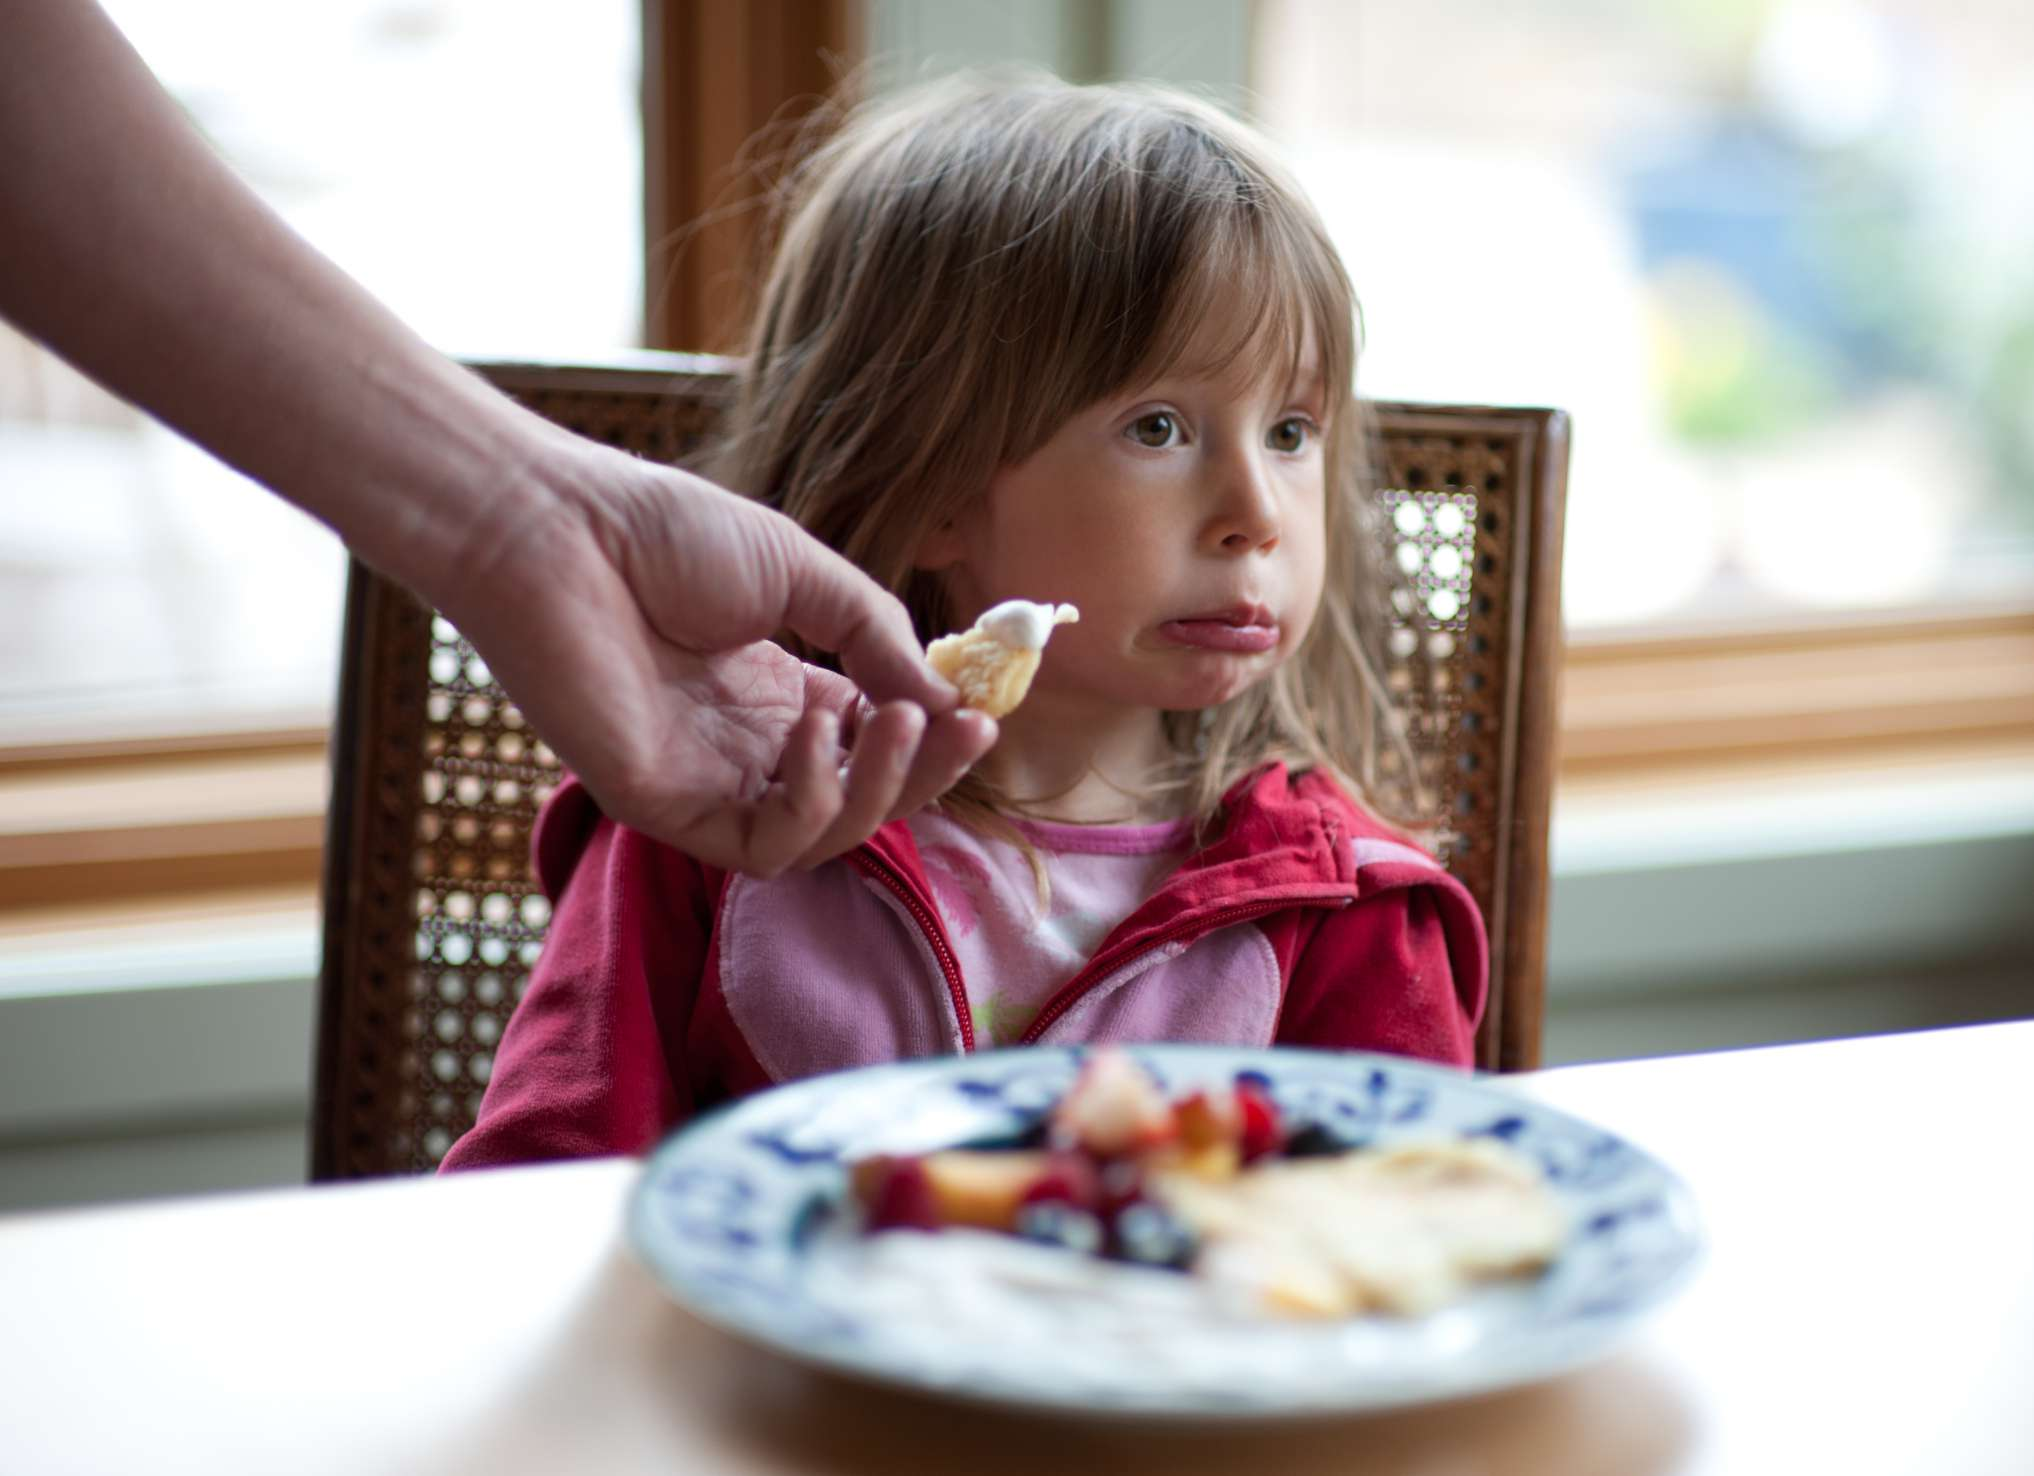 Young child refusing to eat their food at dinner table